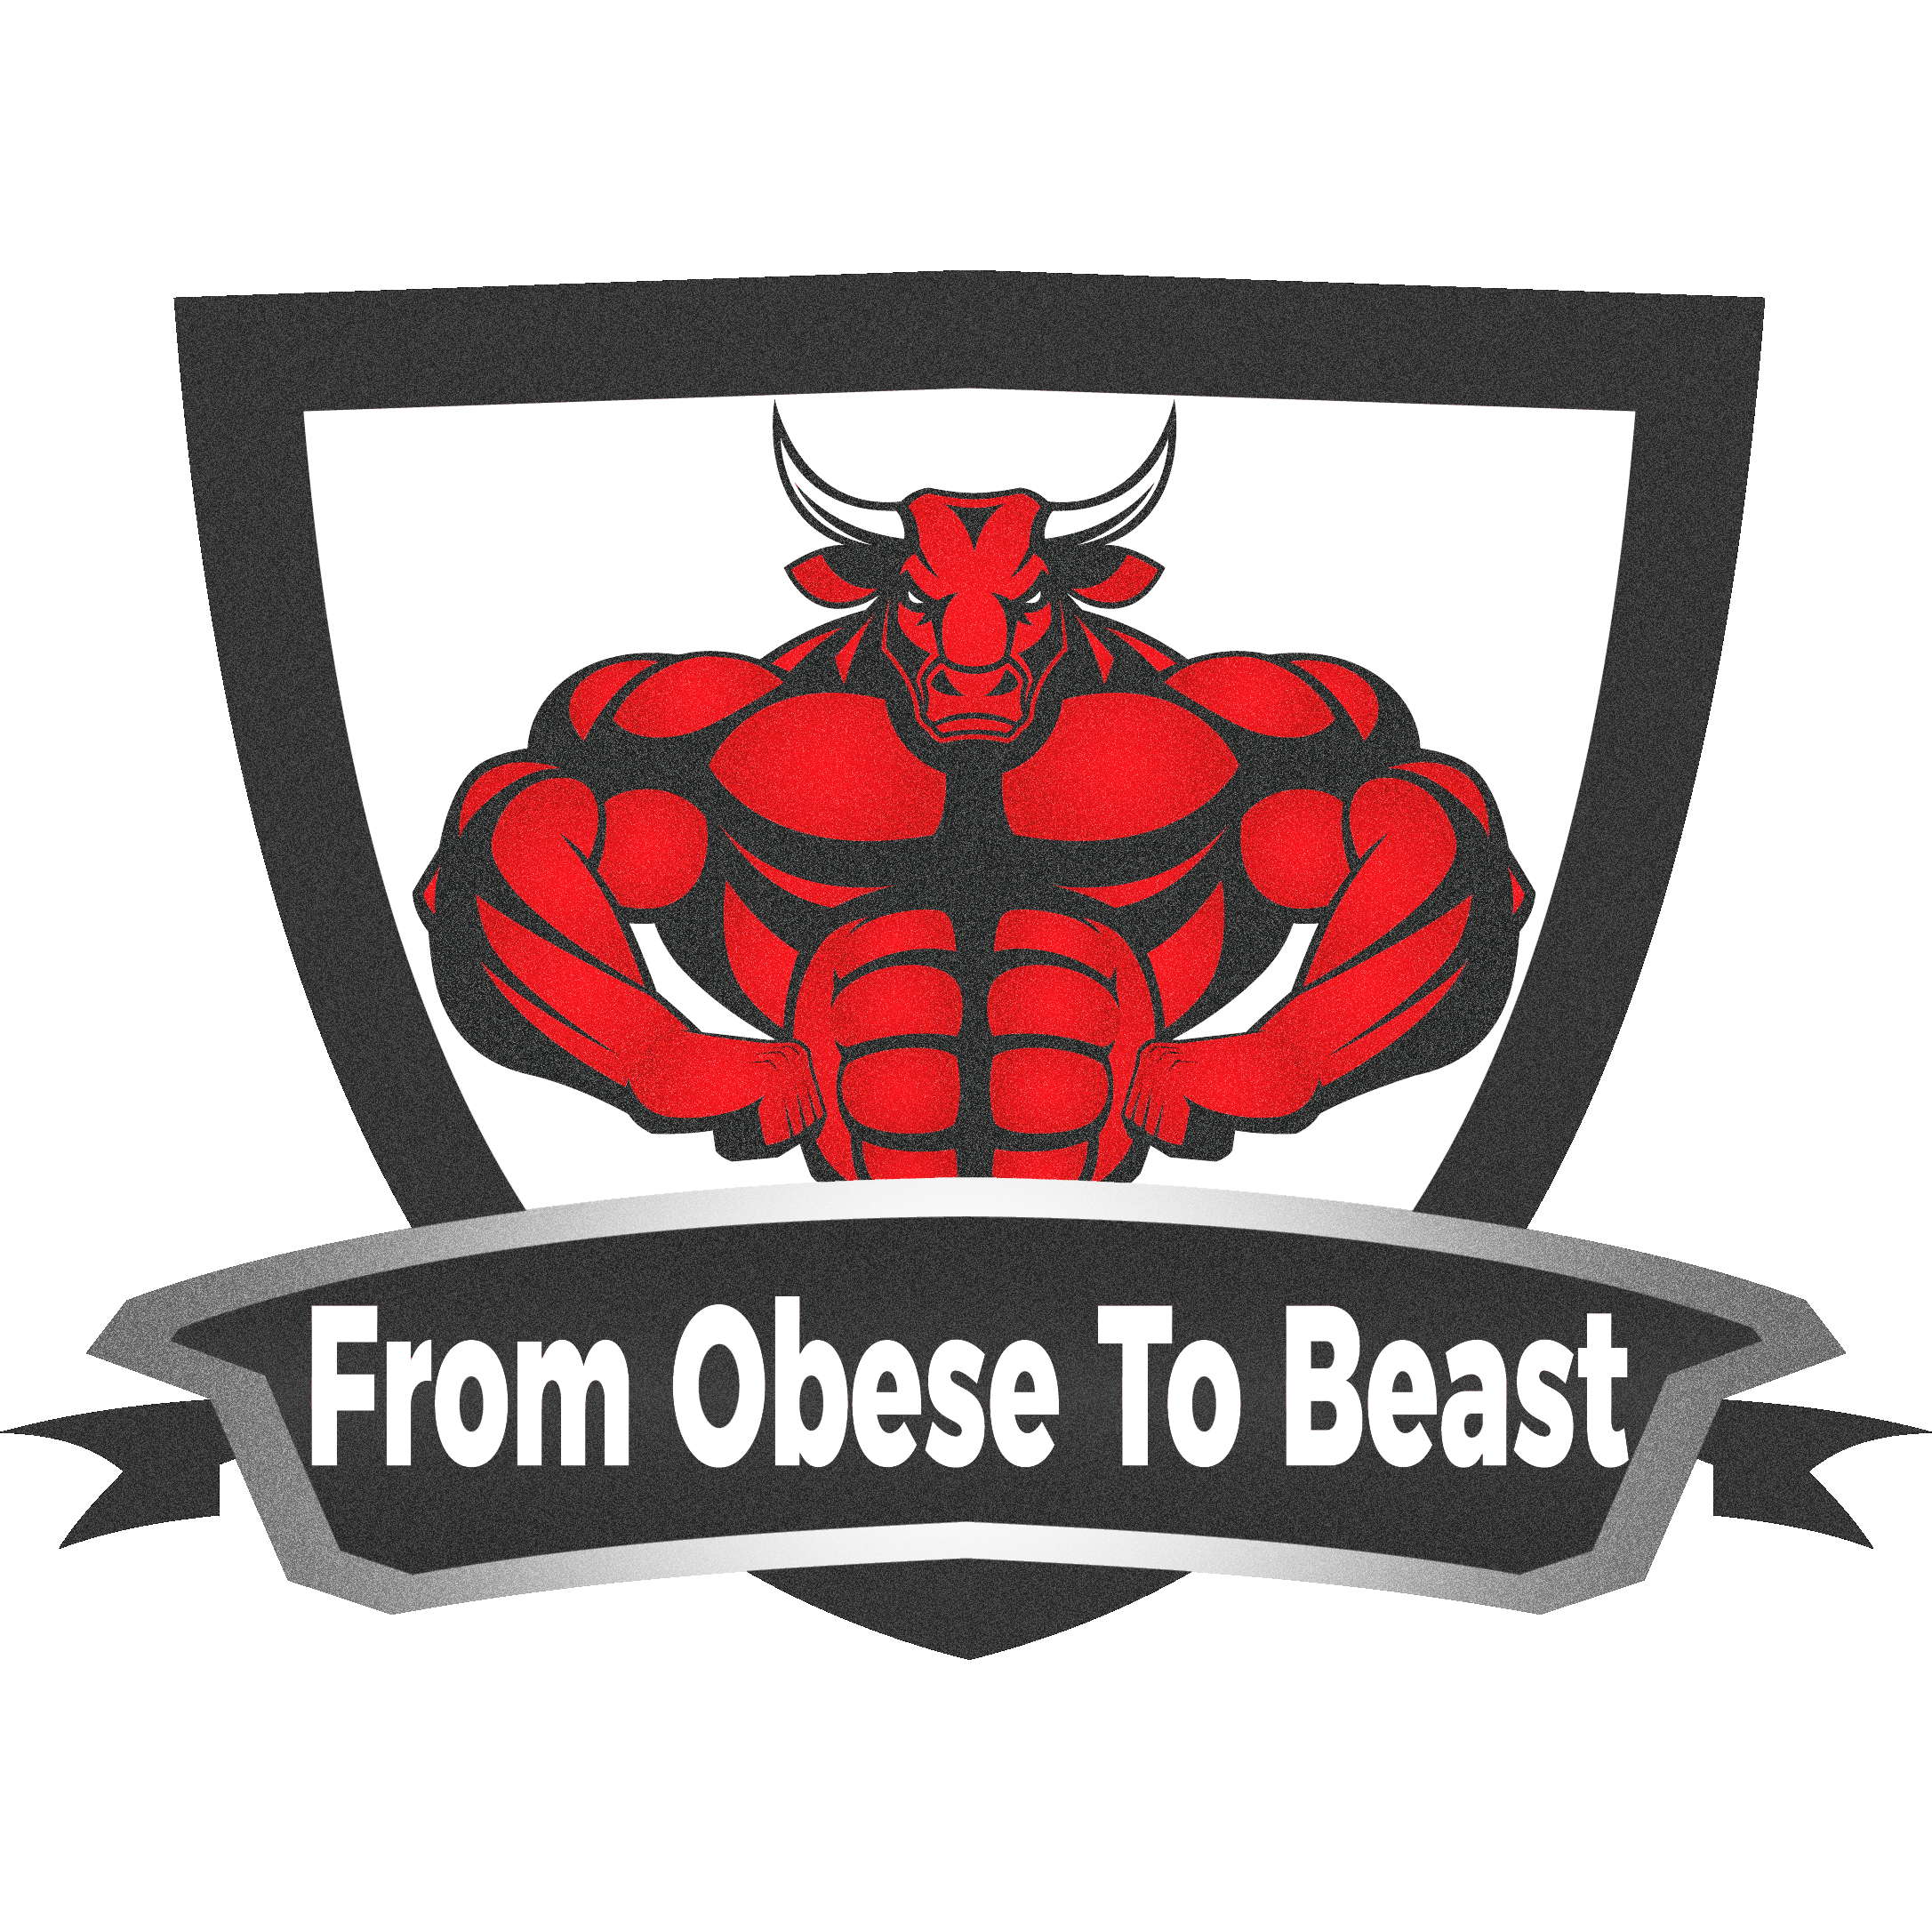 From Obese To Beast image 1